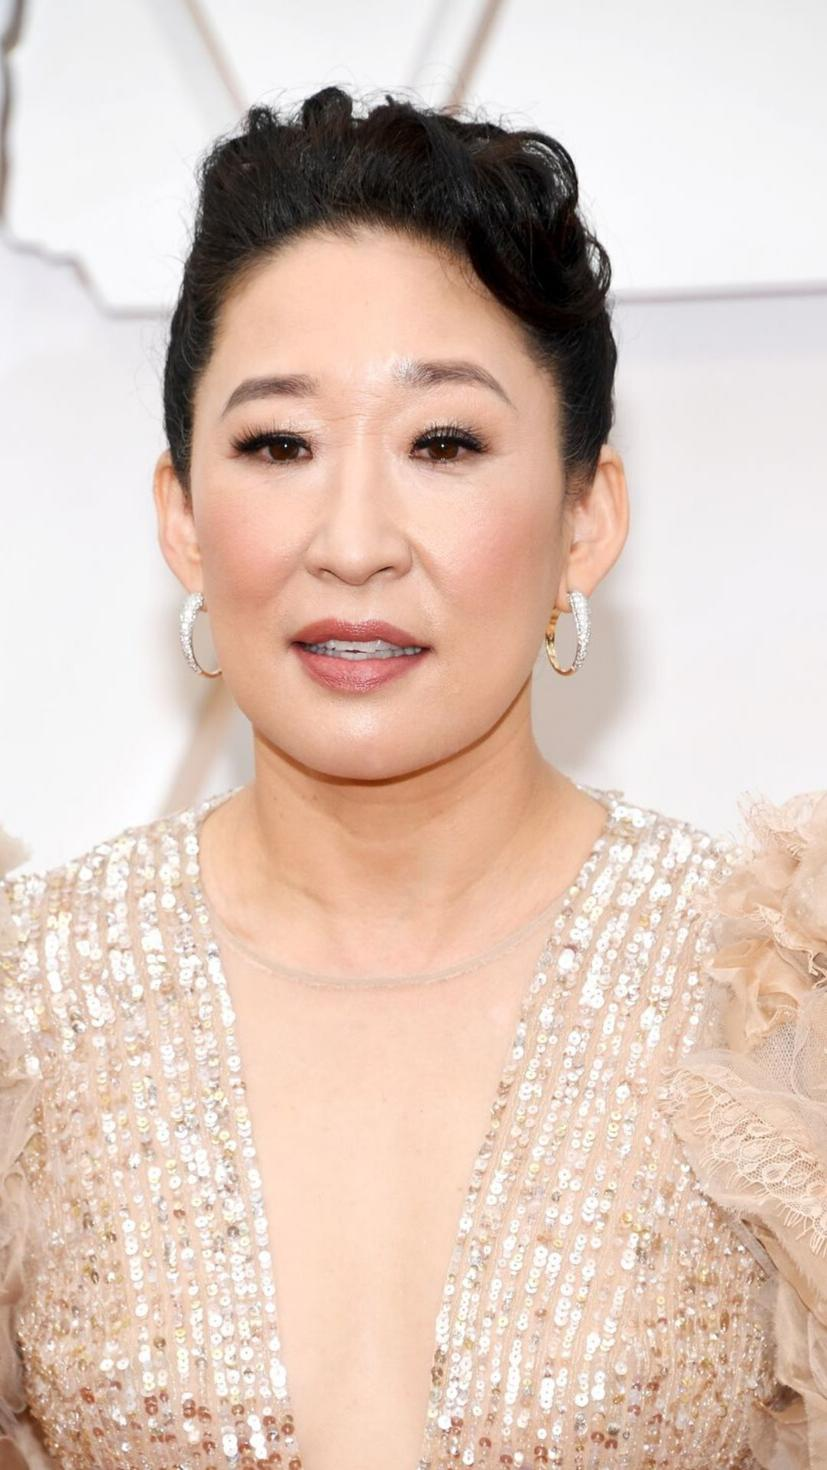 Everything about Sandra Oh's look was on fleek. Her pulled back hair and simple makeup was the best choice to show off the glittery neckline on her fabulous dress.